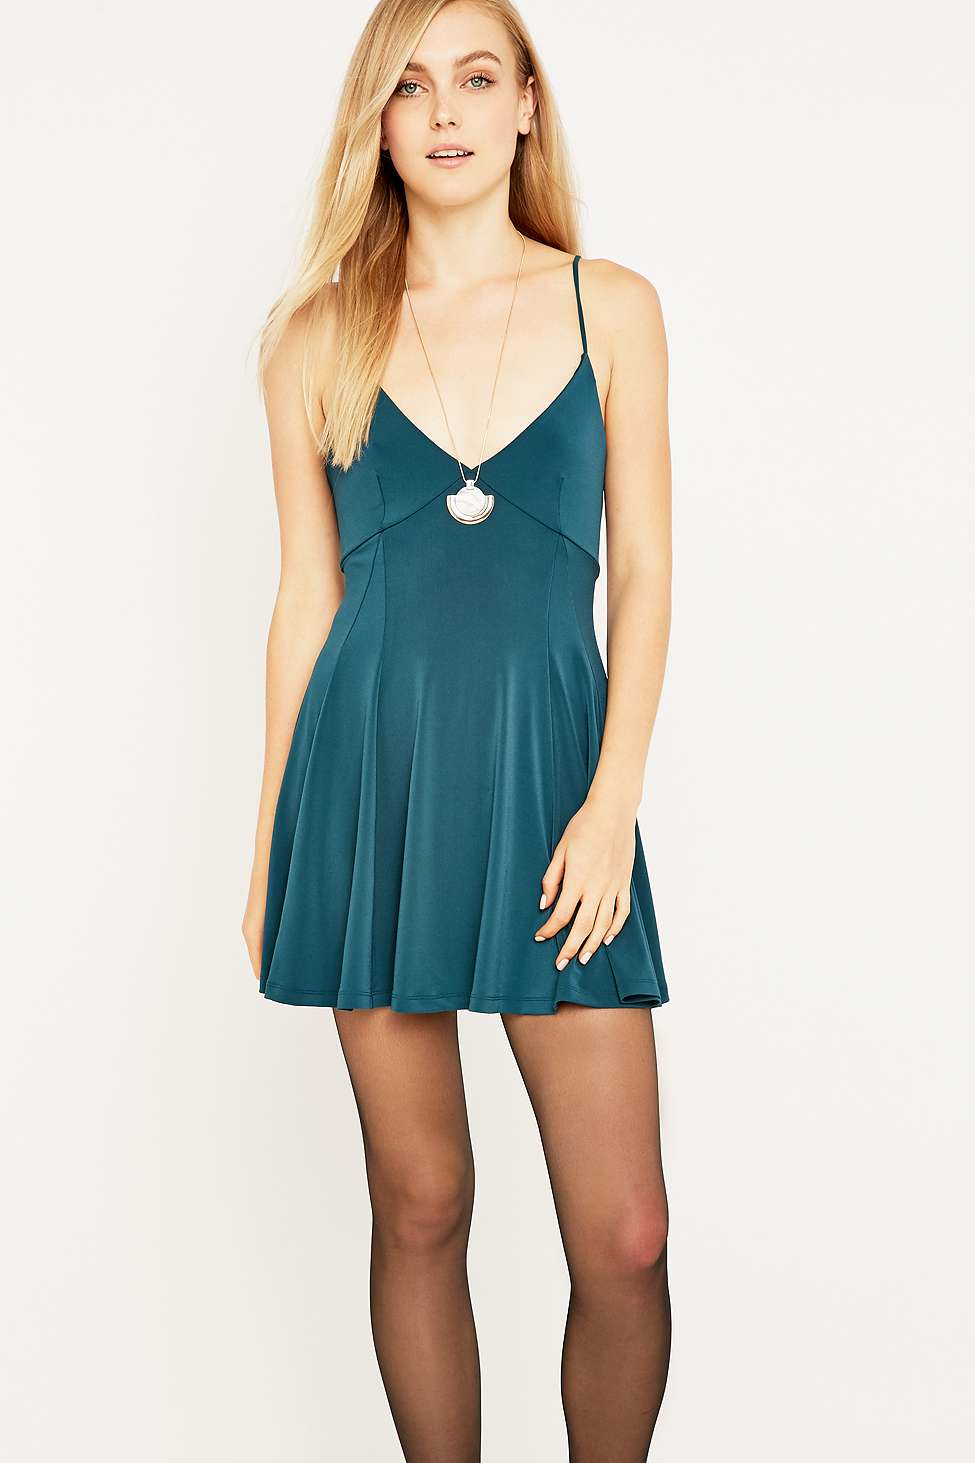 Lyst - Silence + Noise Lonnie Teal Dress in Green